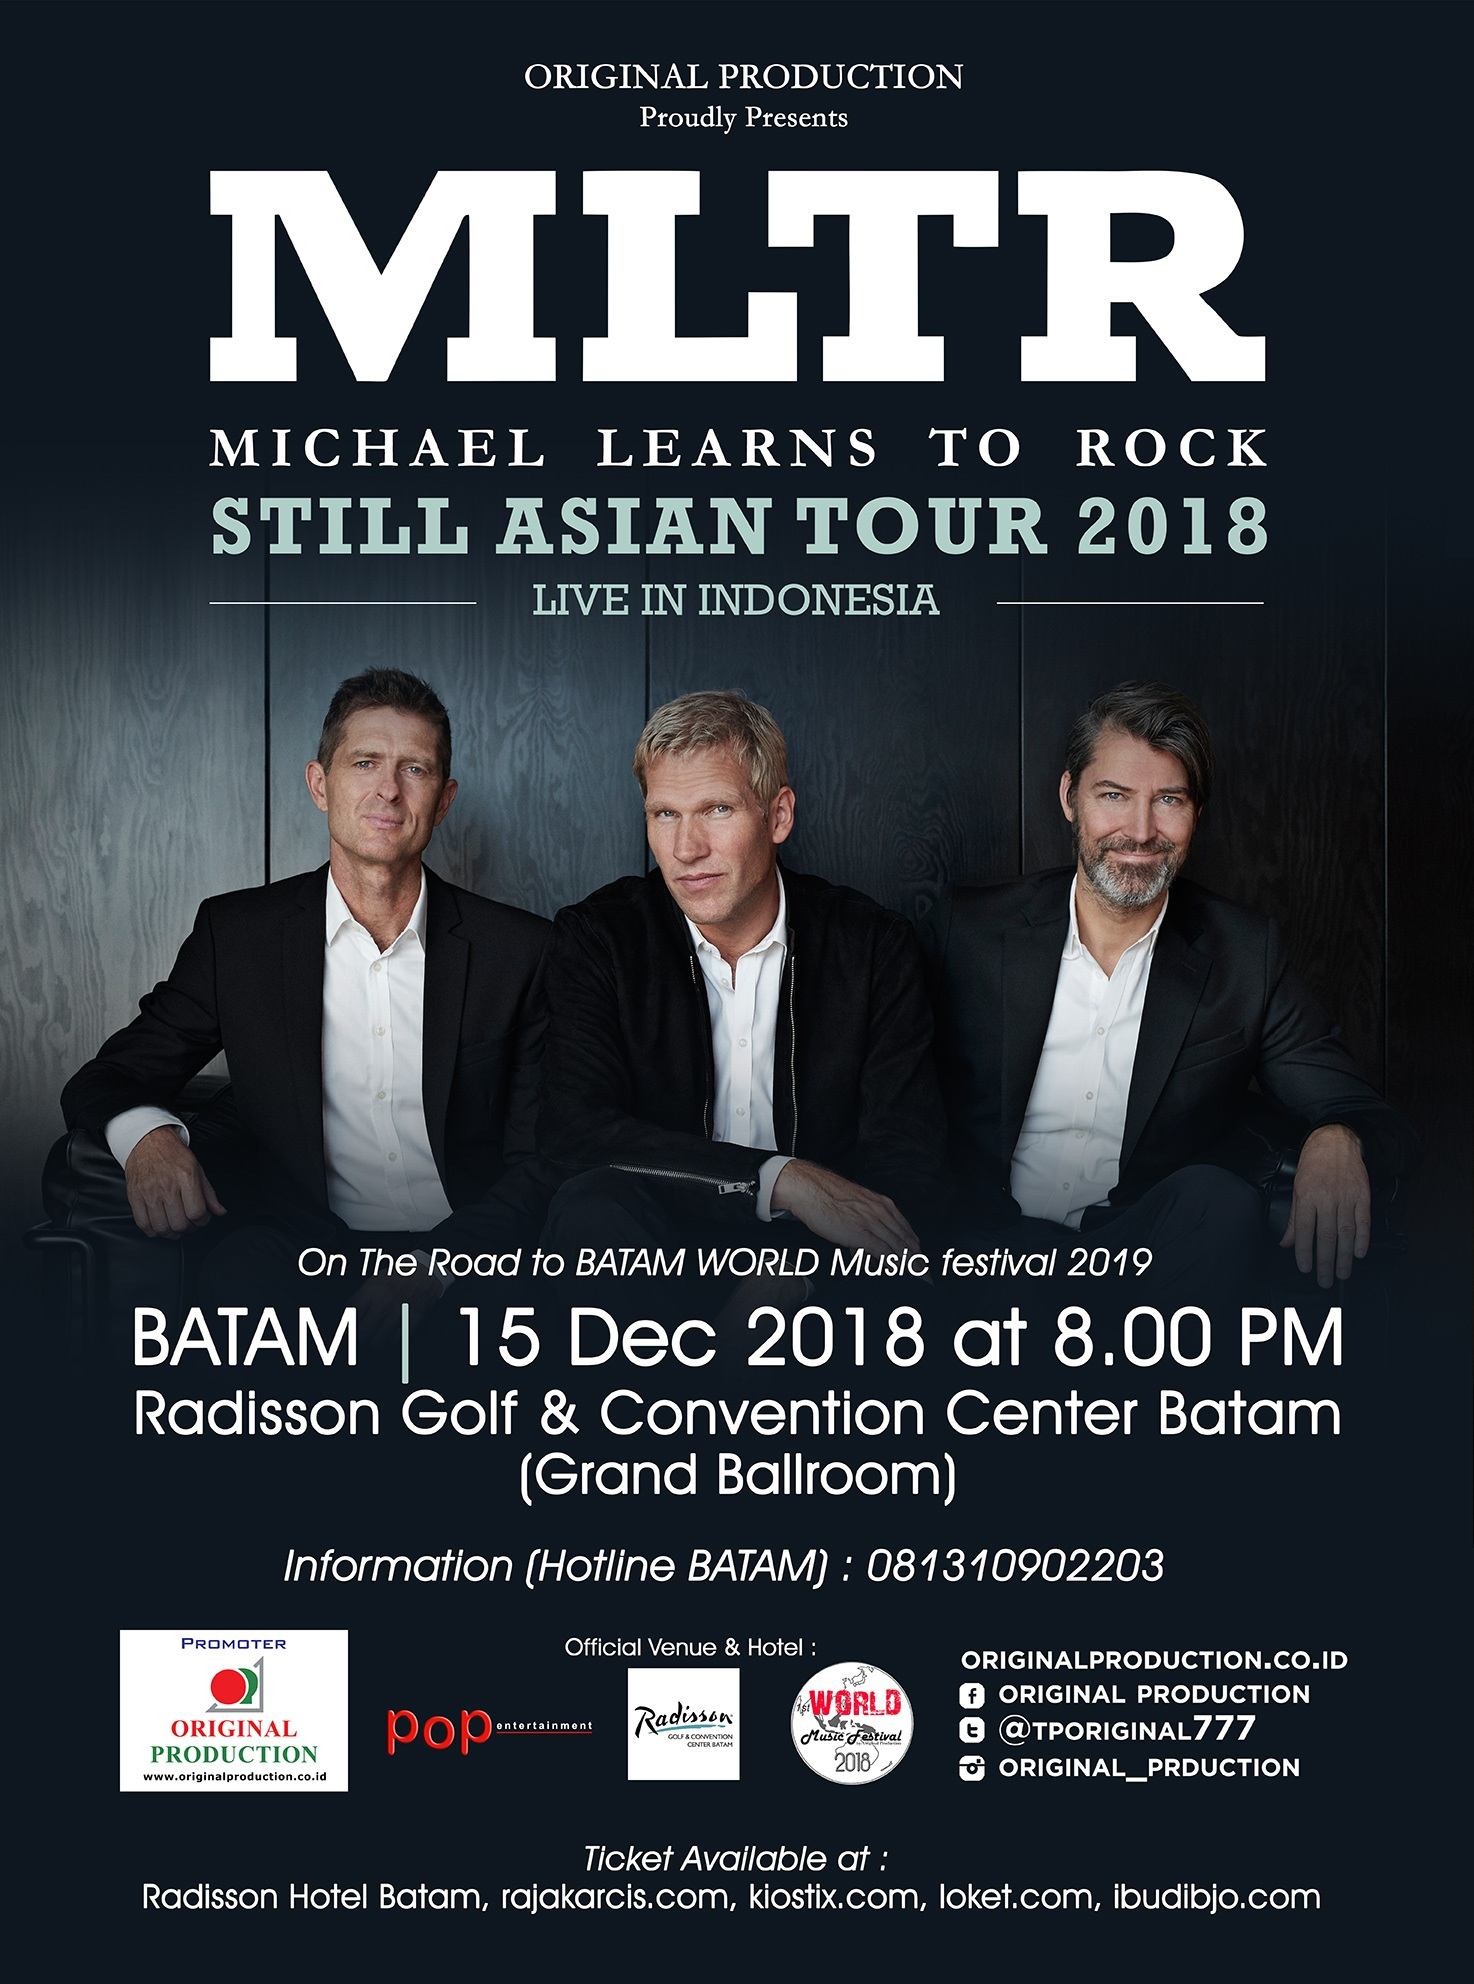 MLTR STILL ASIAN TOUR 2018 (BATAM)